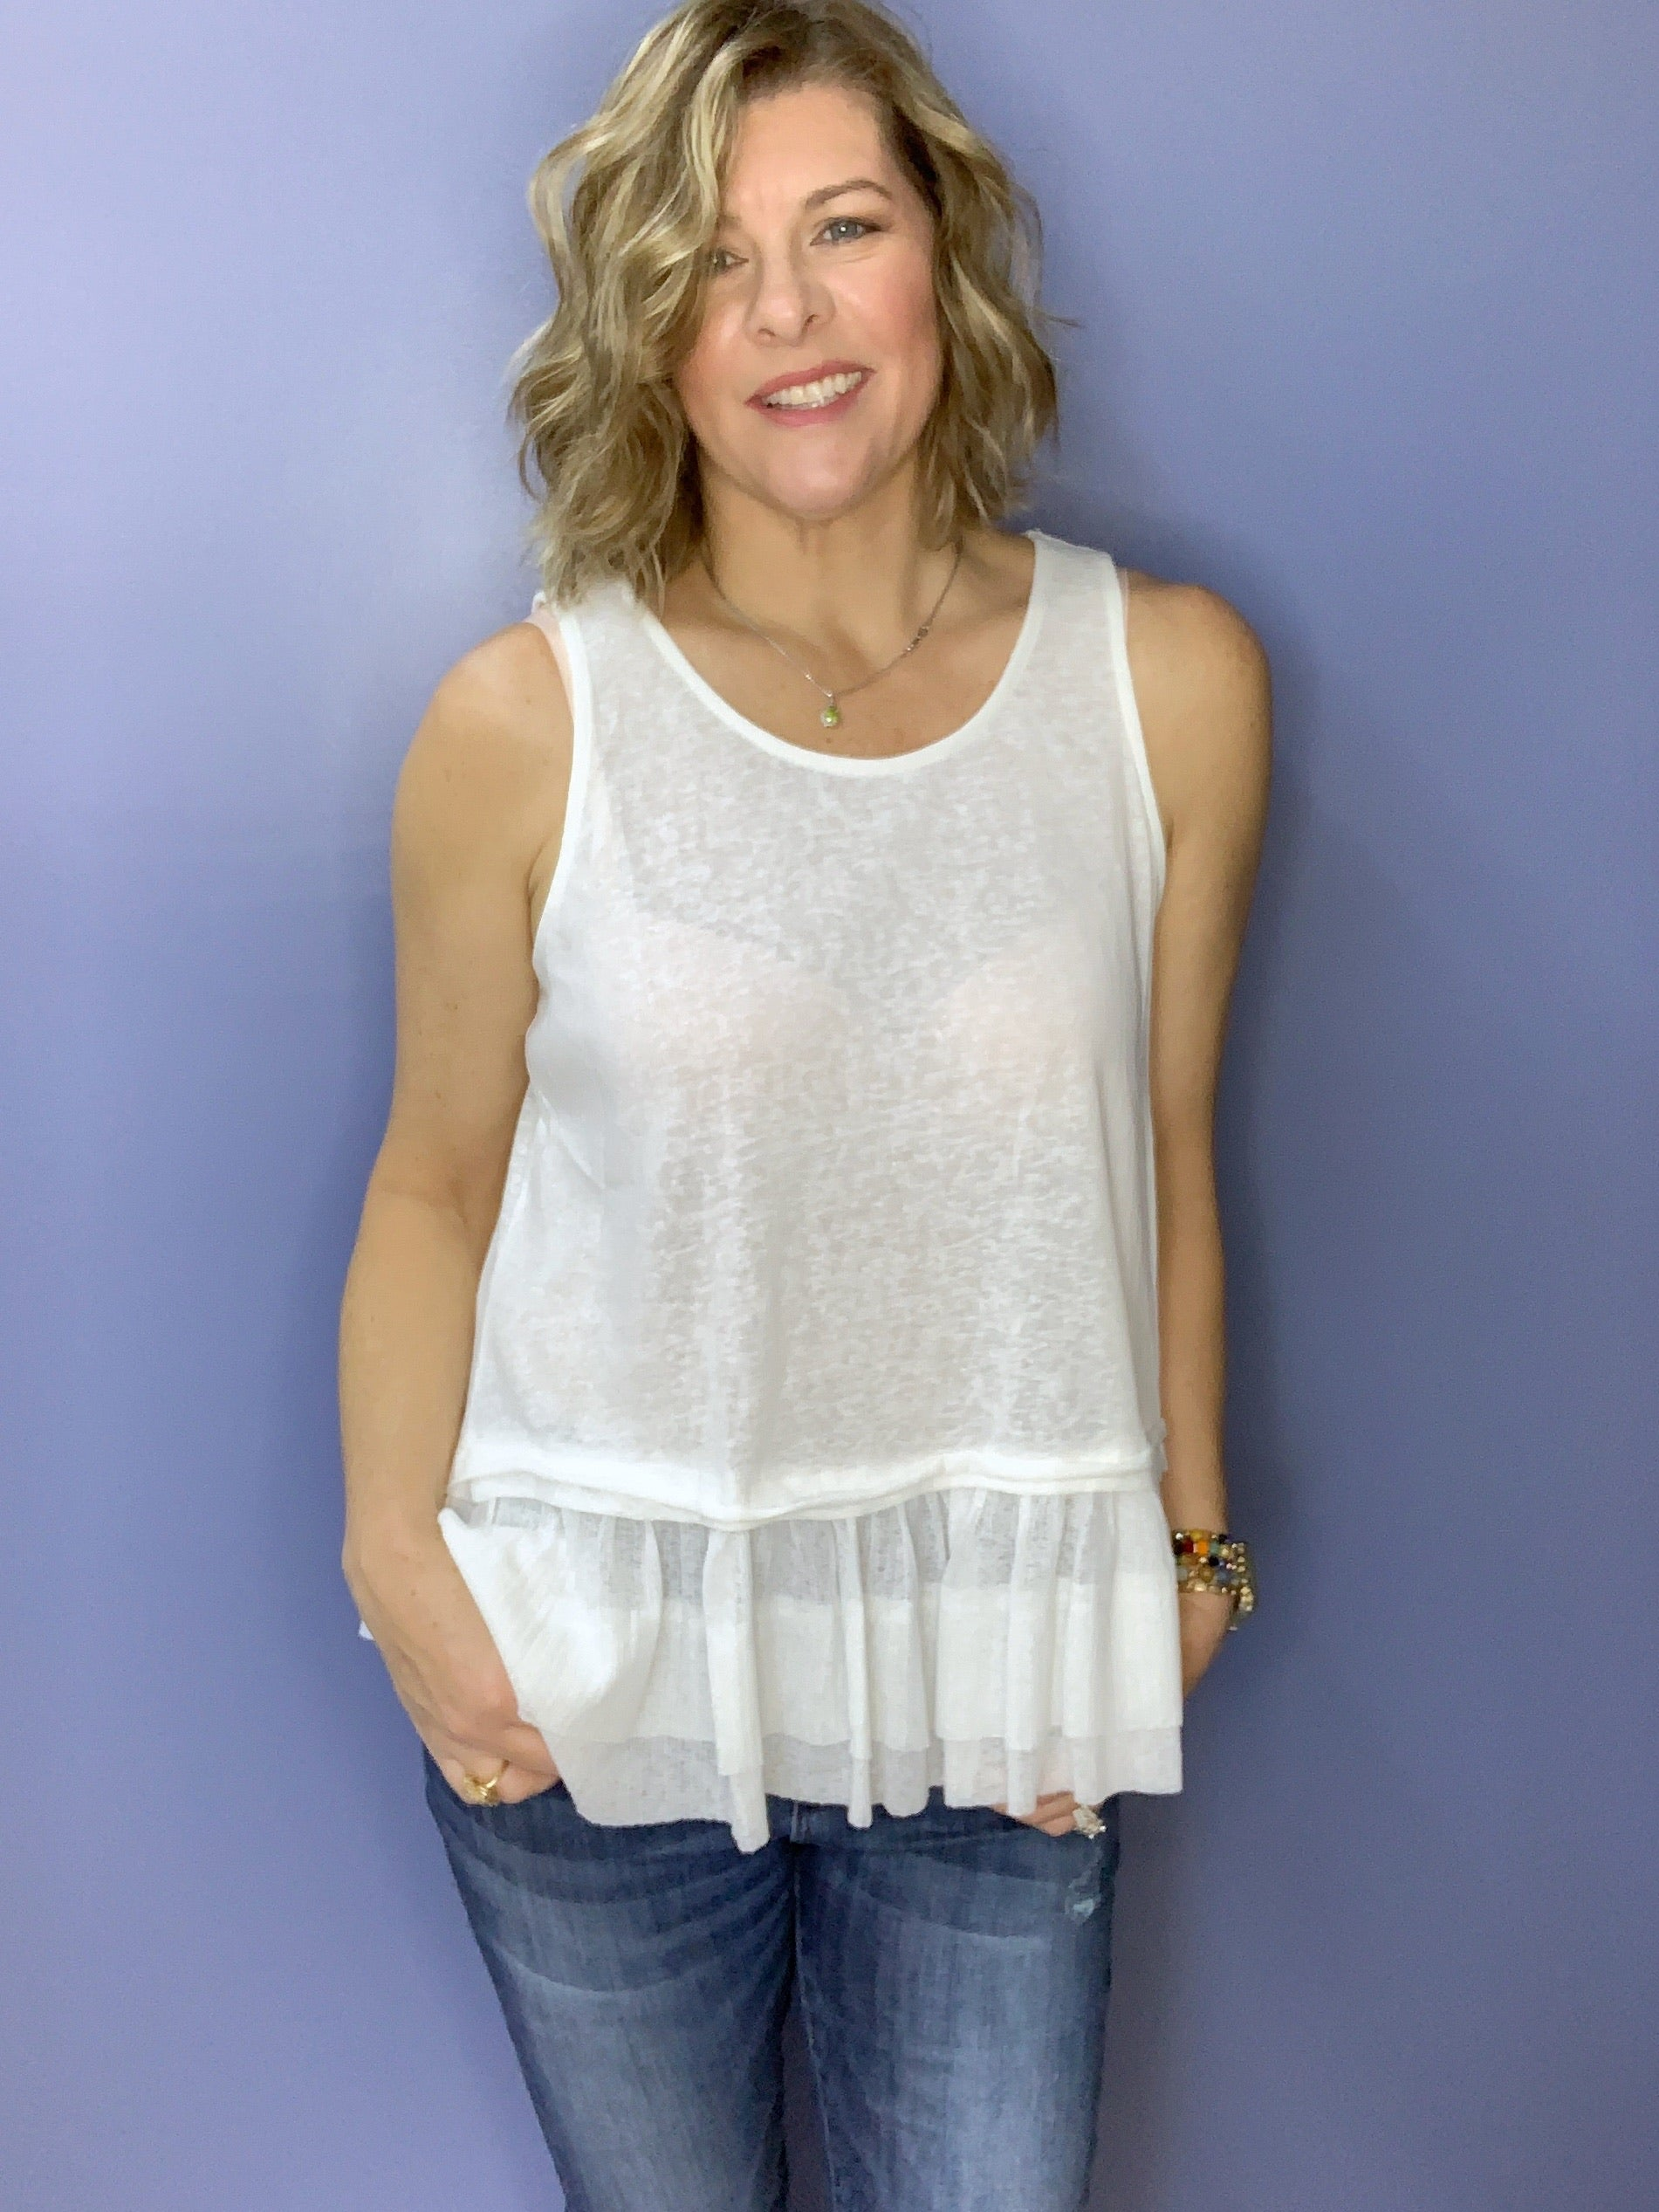 True Love - Ruffled Tank Top / White (XL)